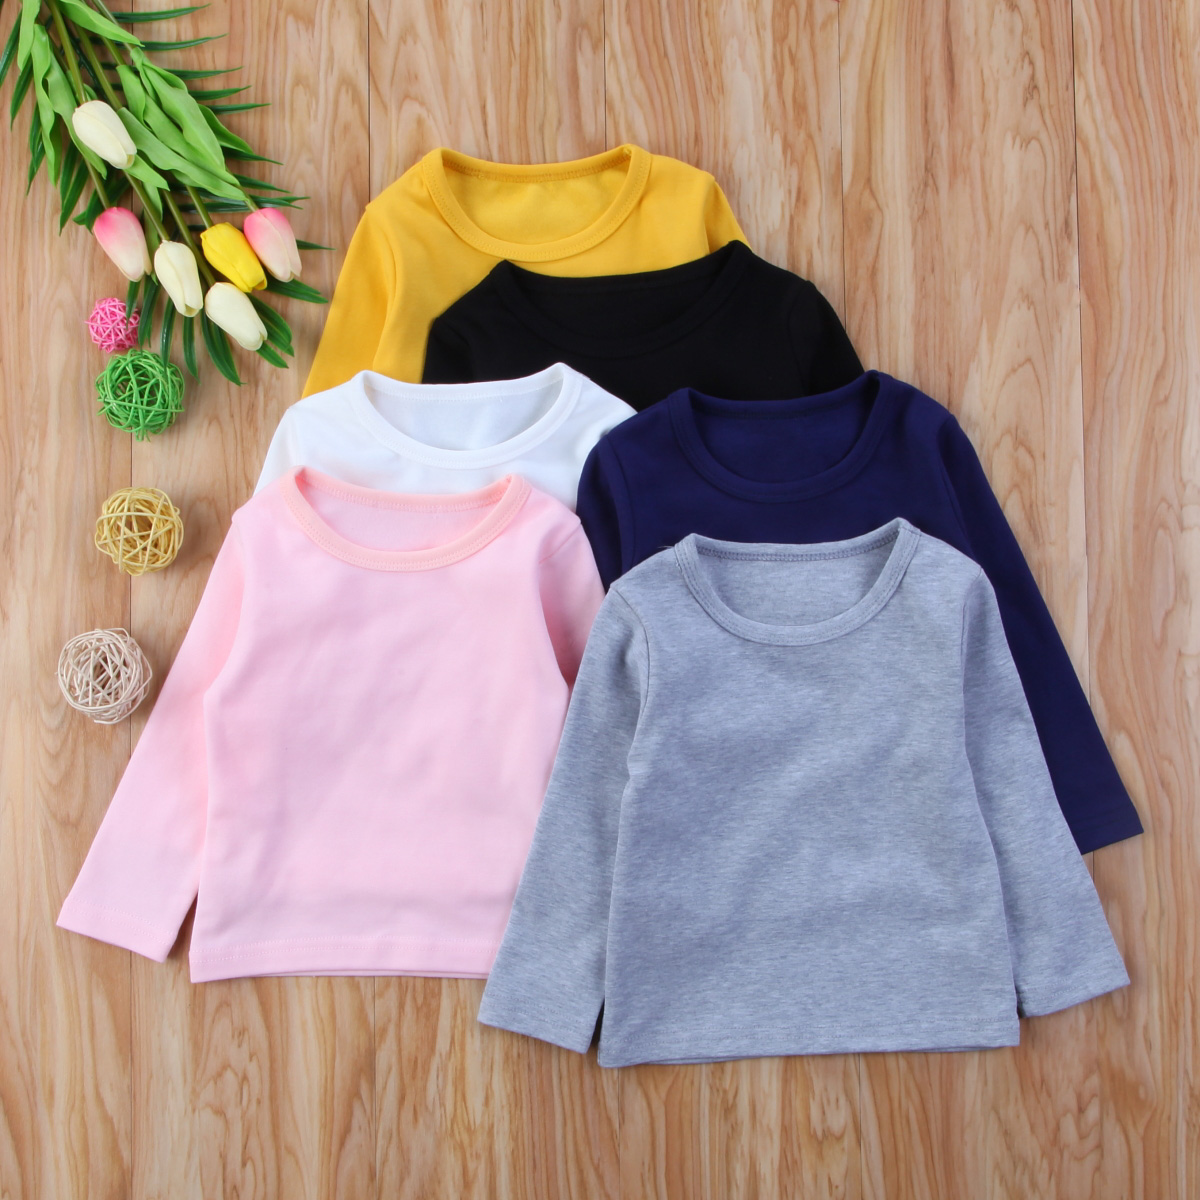 Autumn Cotton Newborn Infant Kids Baby Boys Girls Clothes Solid Cotton Soft Clothing Long Sleeves T-shirt Tops 2